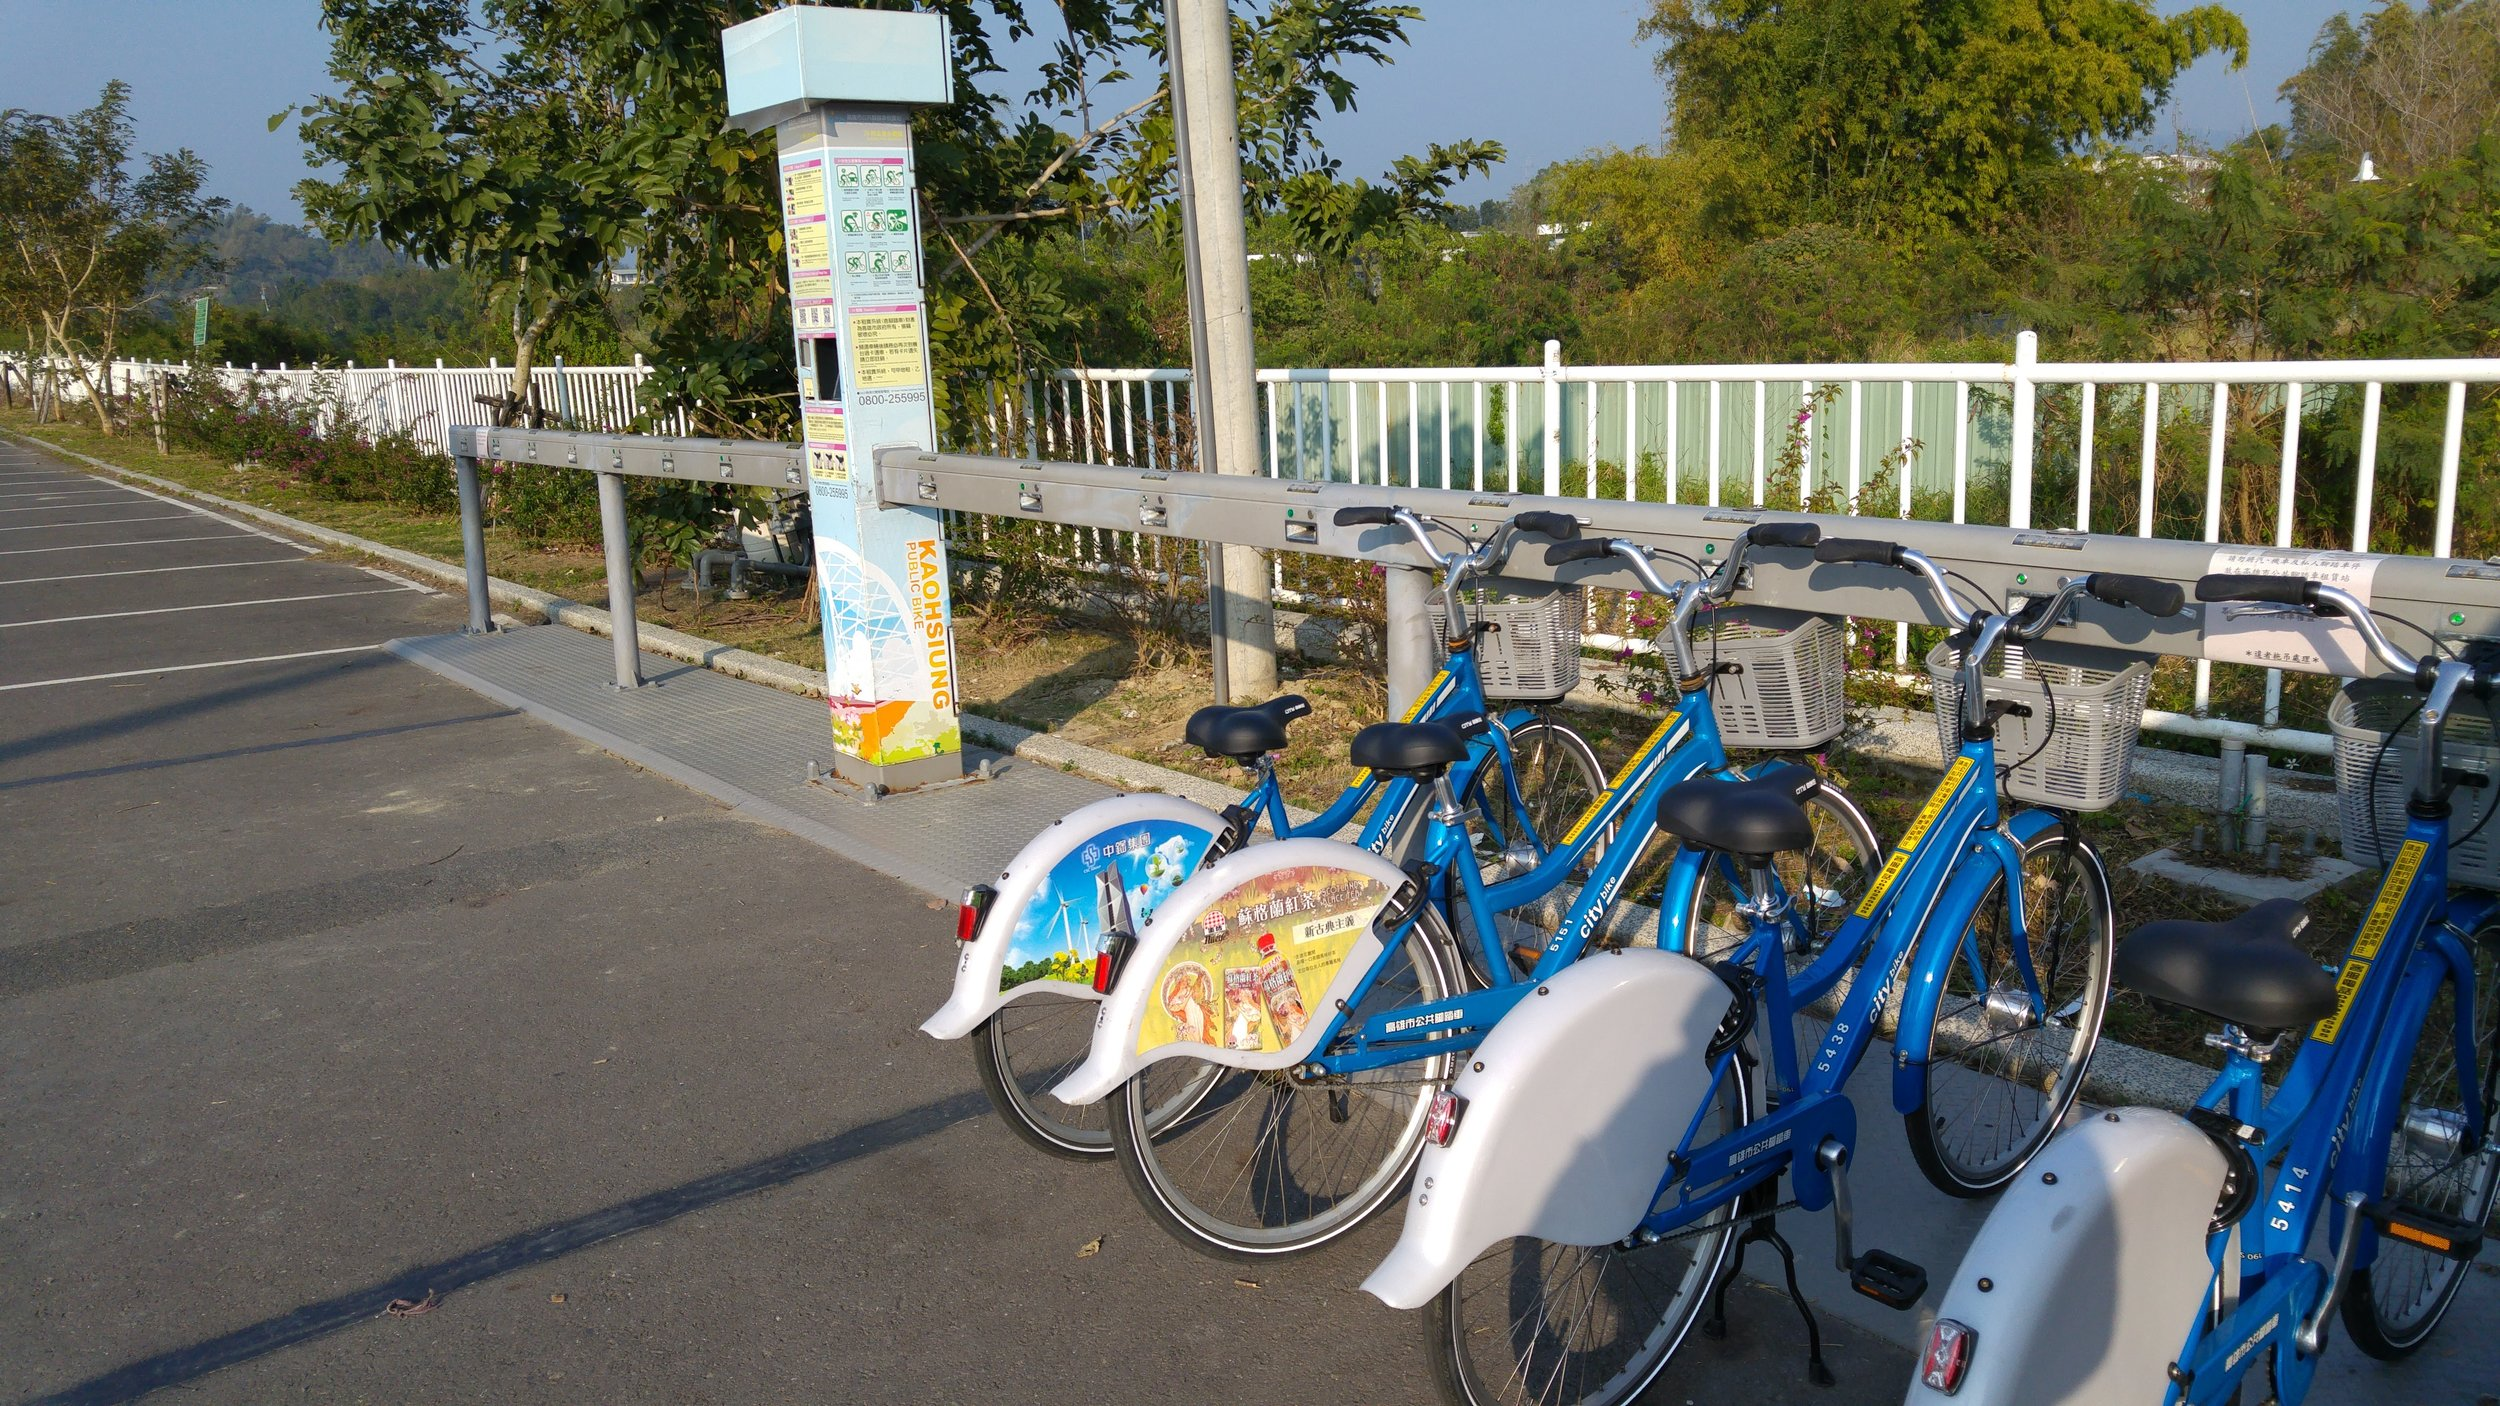 Kaohsiung City Bike Rental Place - the most Northern one